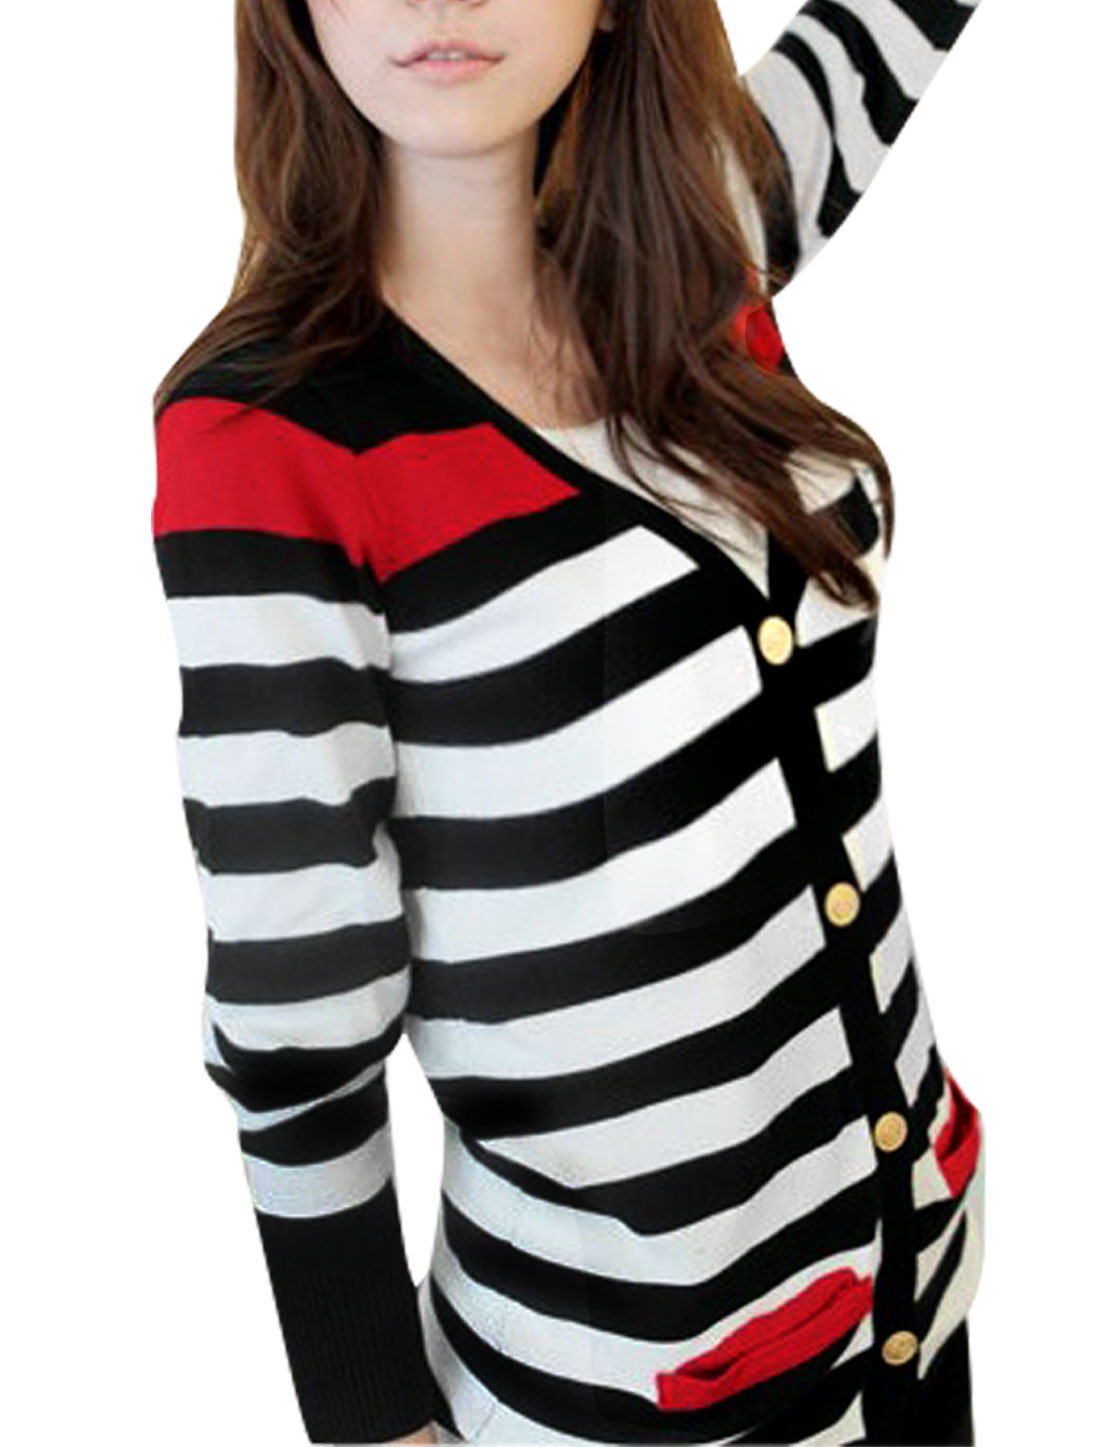 643 Women Striped Single Breast V Neck Stretch Autumn...